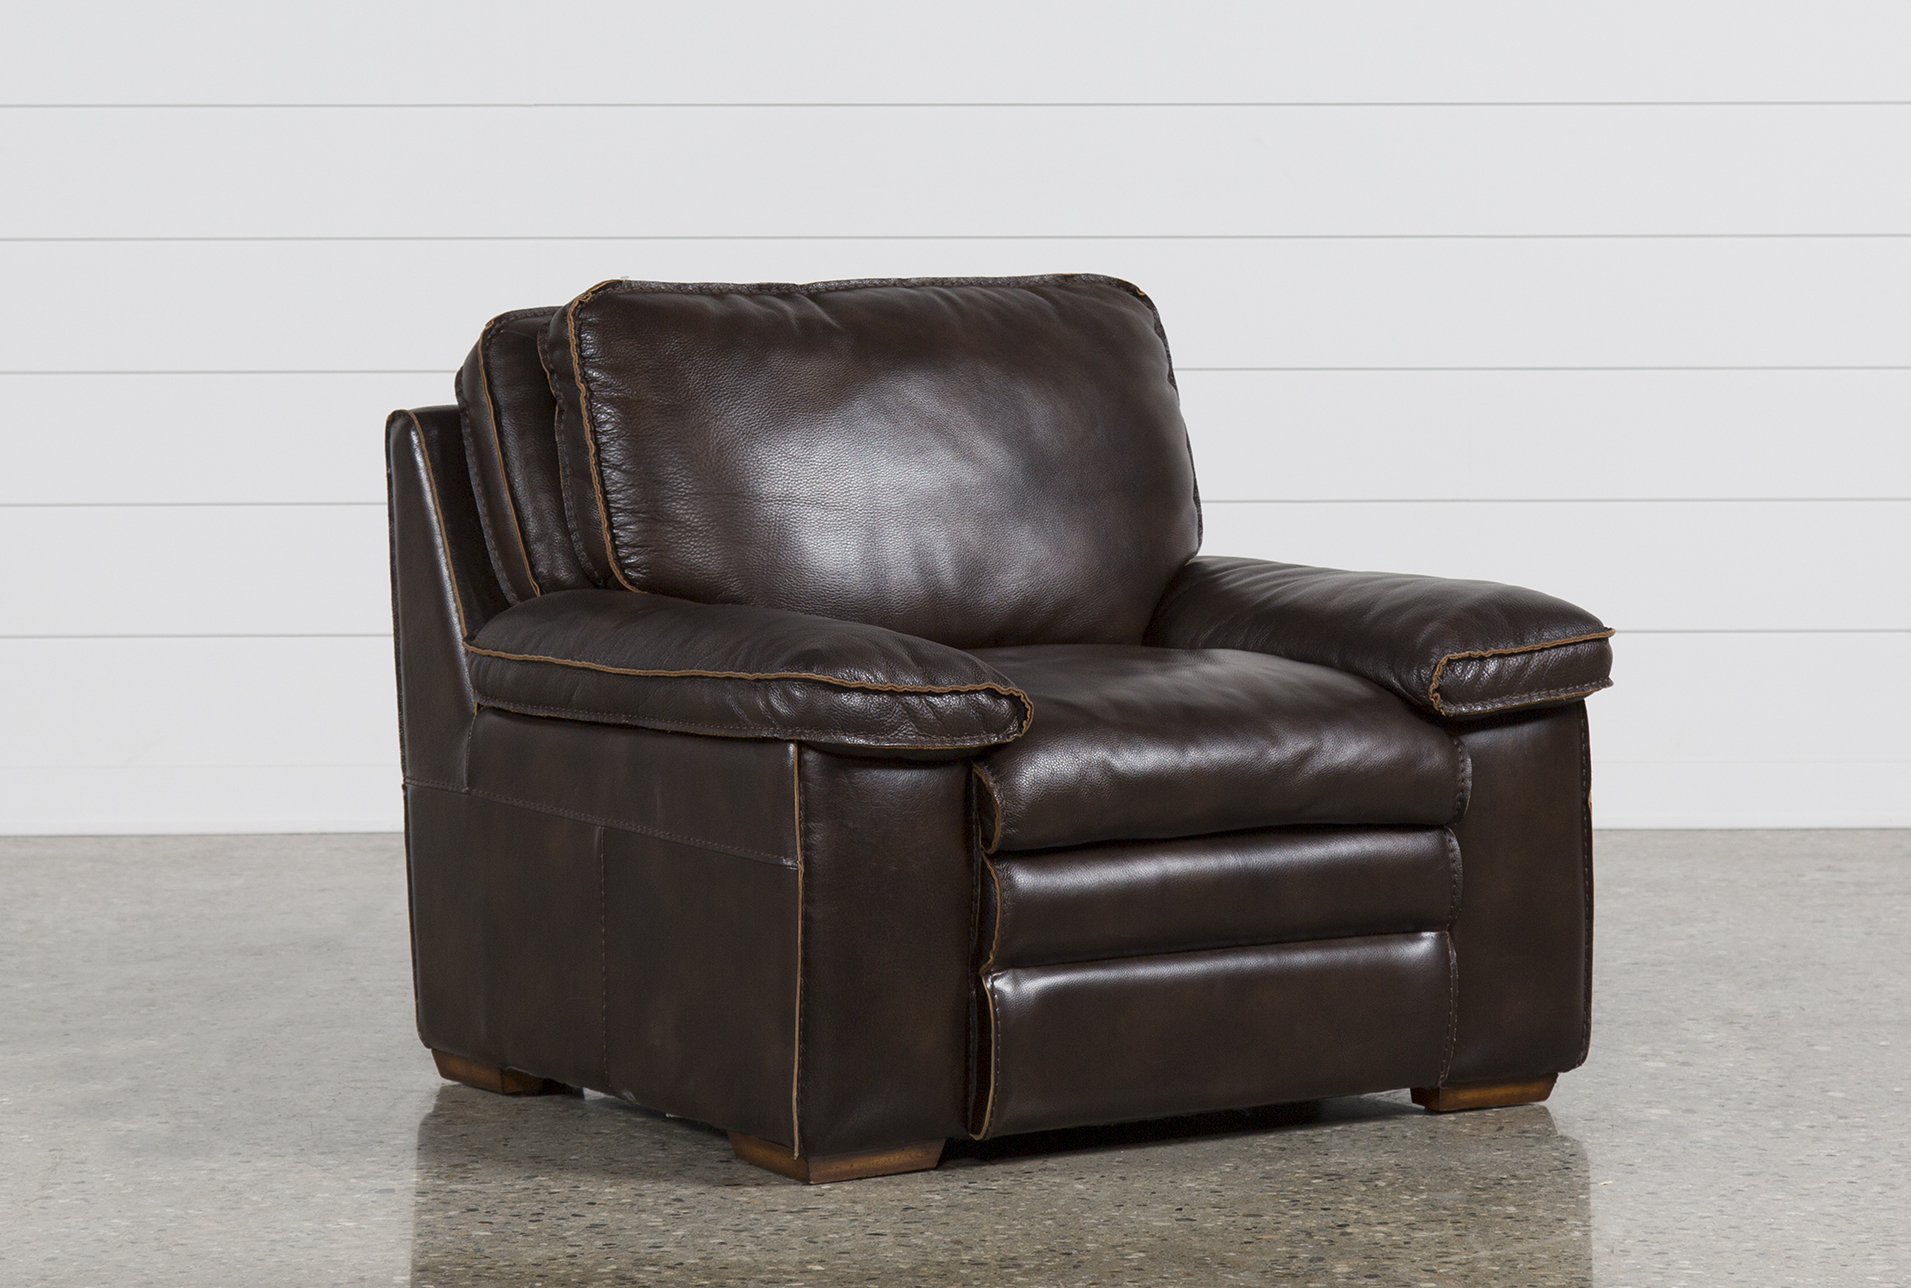 Exceptional Walter Leather Chair (Qty: 1) Has Been Successfully Added To Your Cart.